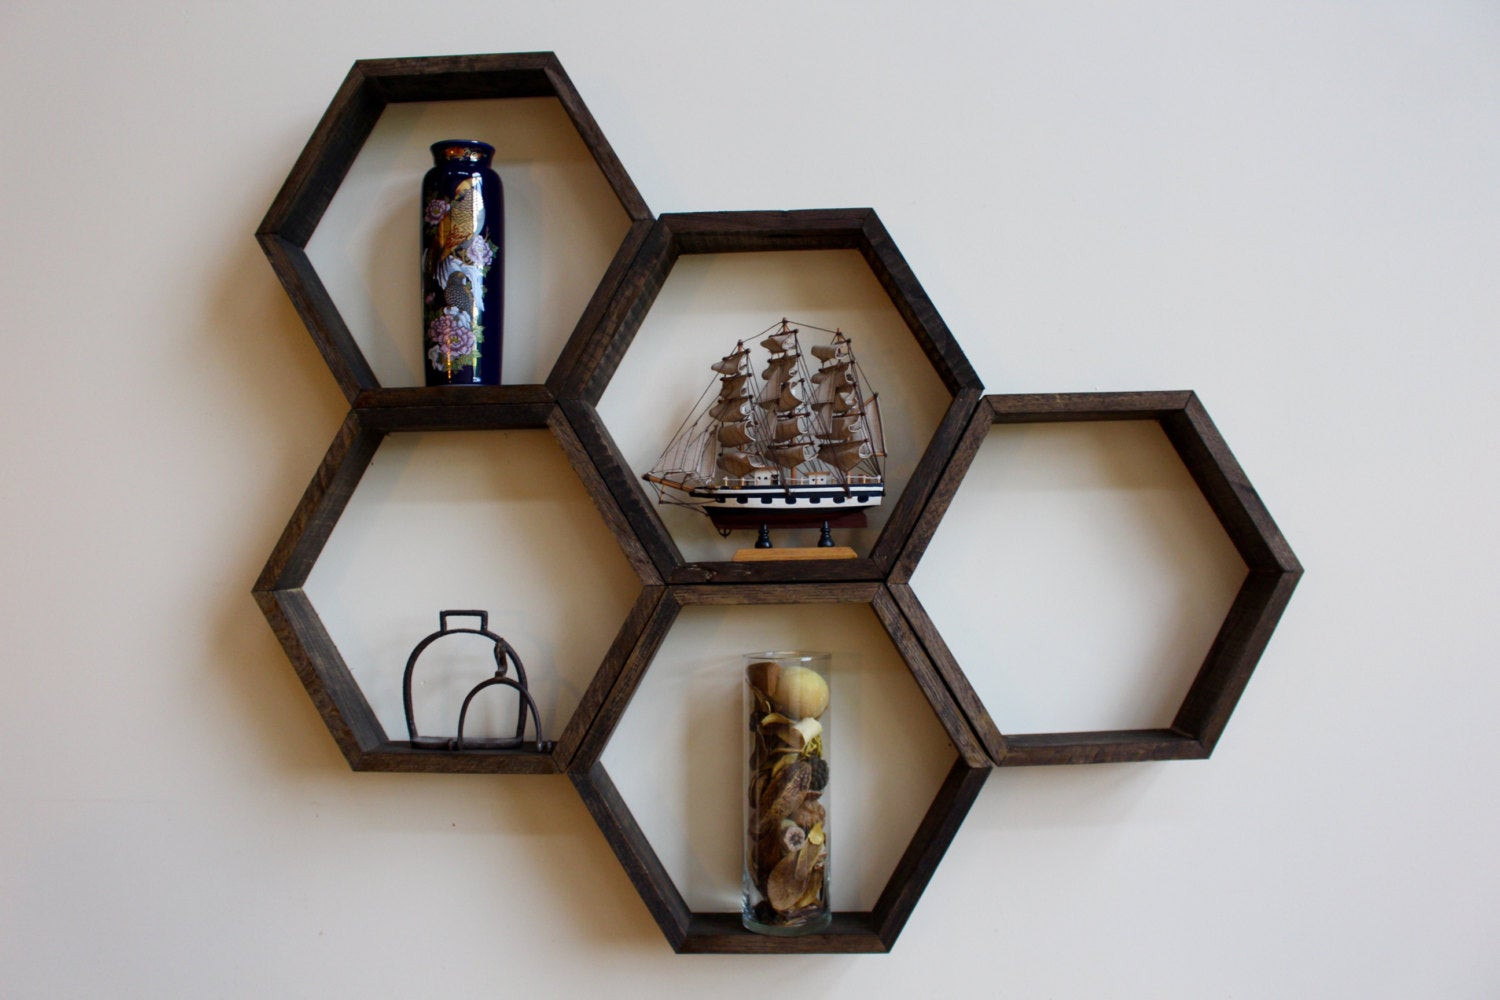 Handmade Wall Decor Wooden Honey B Hexagon Shelves Handmade Wall Decor Sets